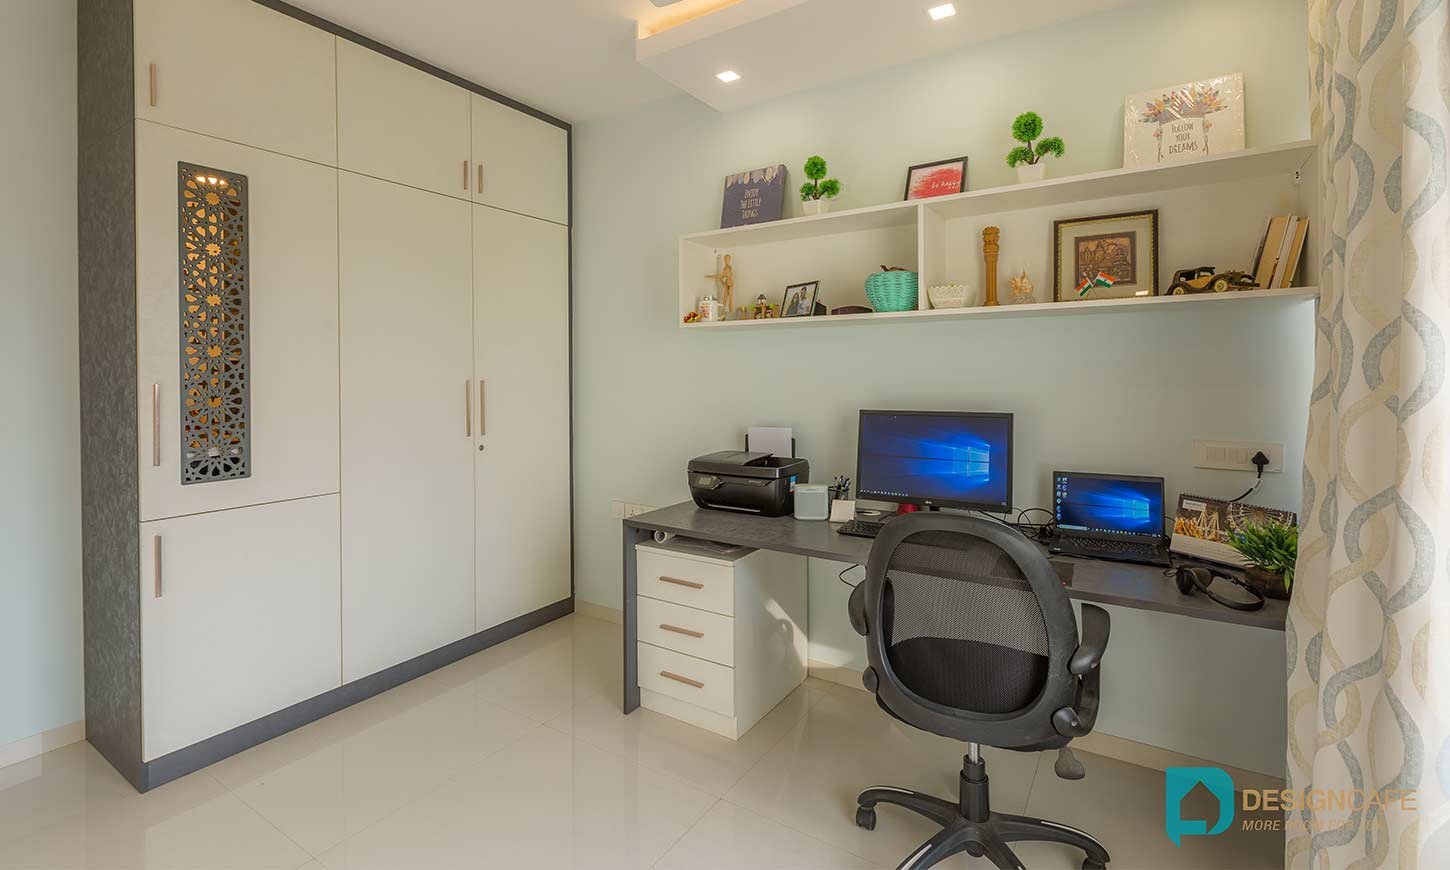 Study room designed by home interior designers in bangalore